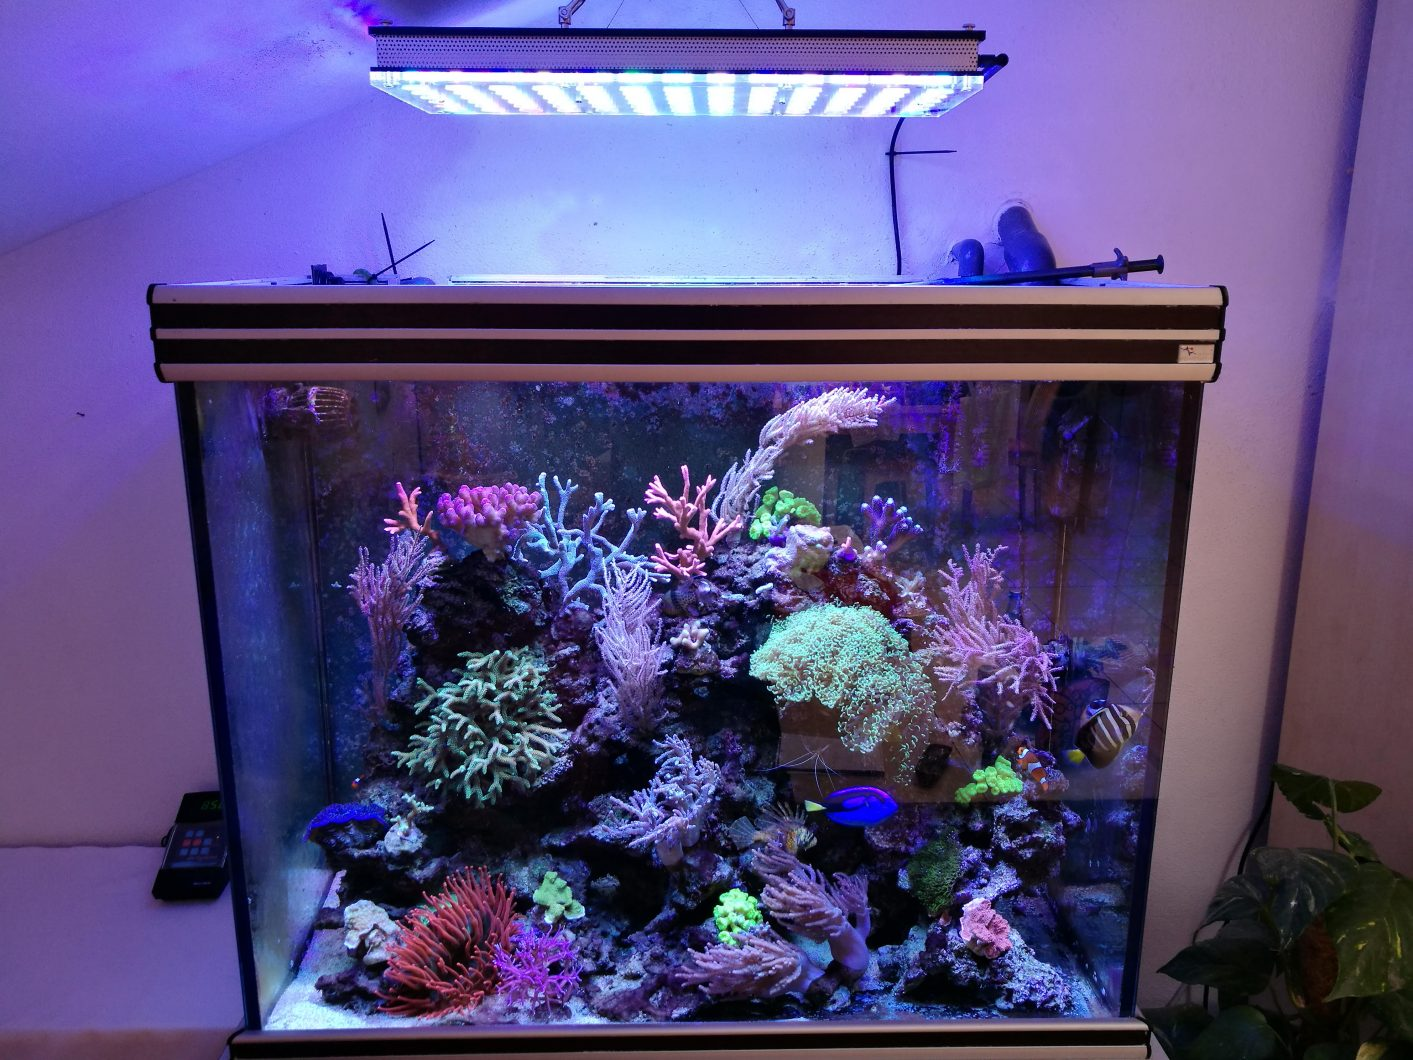 Orphek atlantik v4 rev akvarium LED belysning